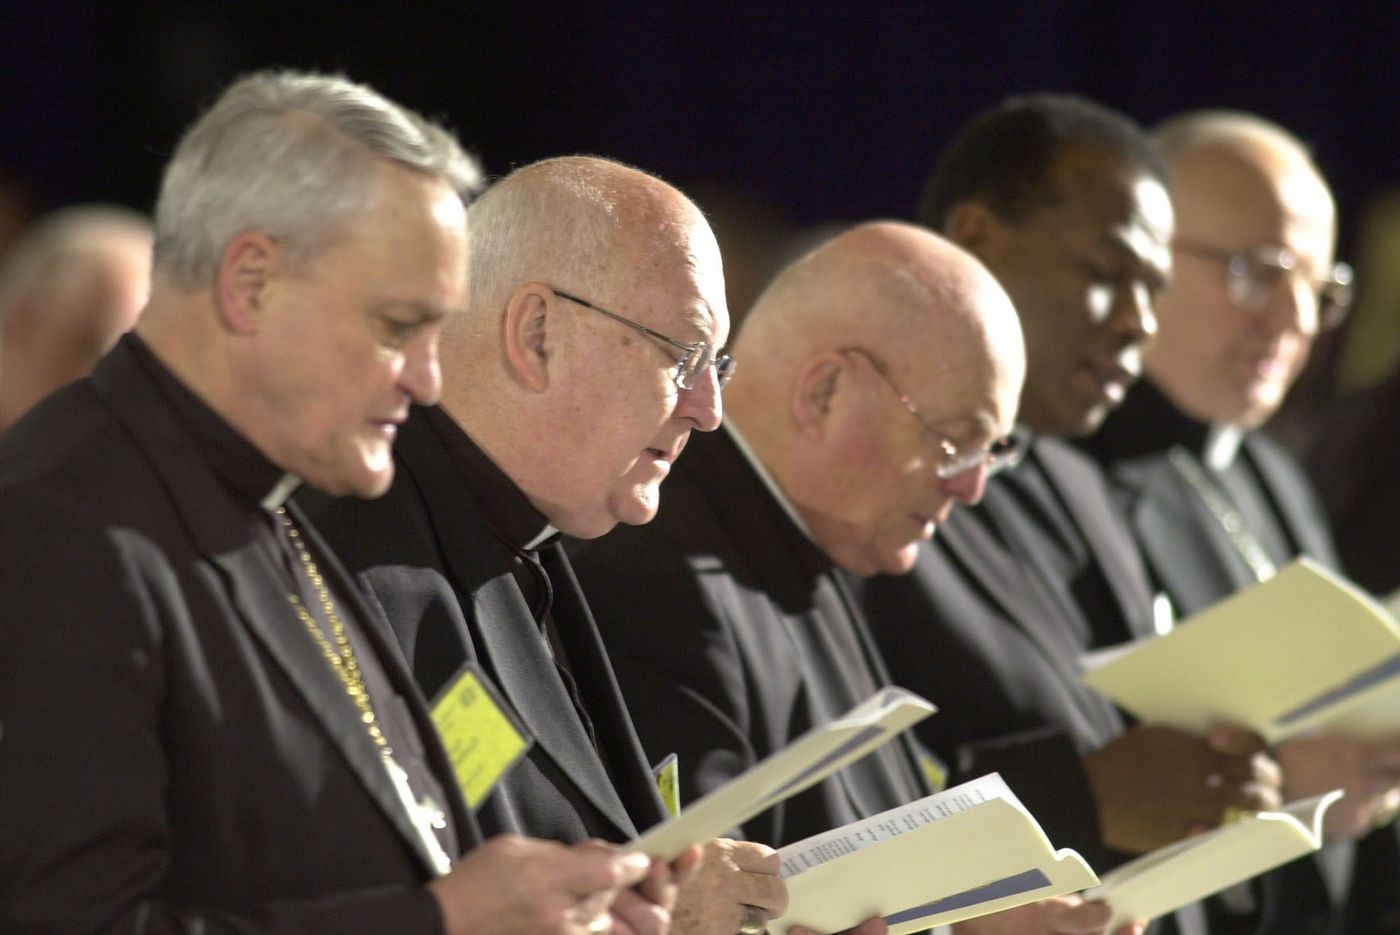 From 2004: Vatican urging leaders to do more self-policing